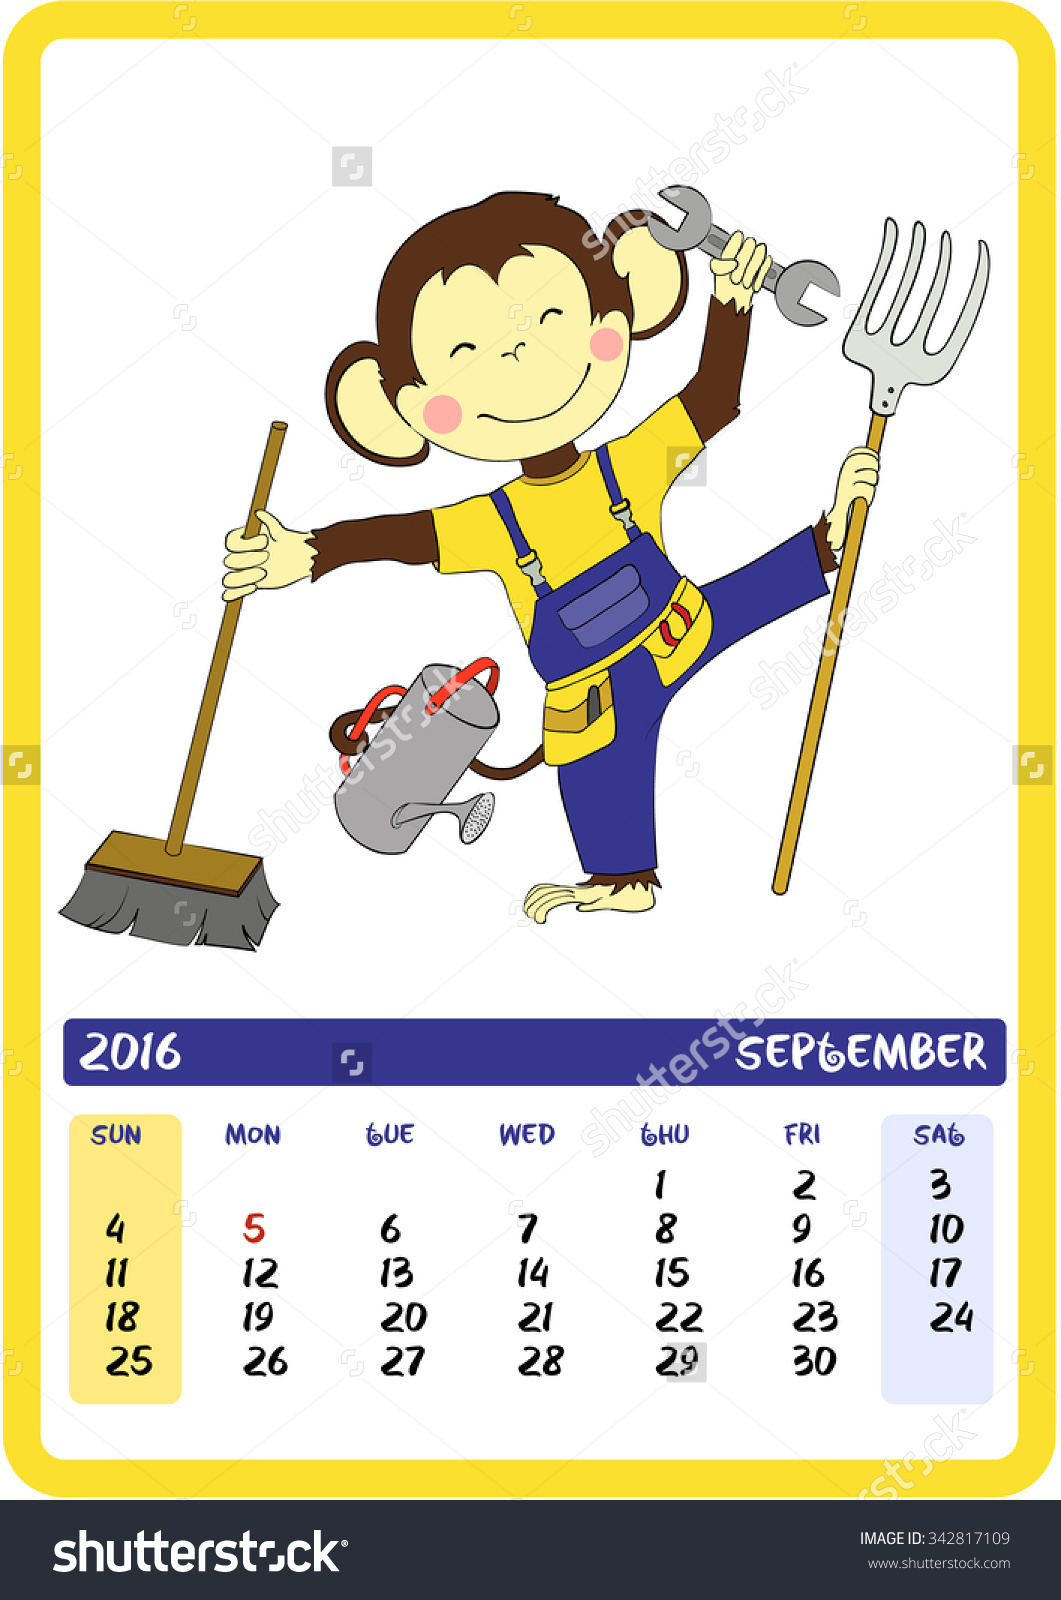 September. Labor Day. Monkey Holding Different Tools. 2016.